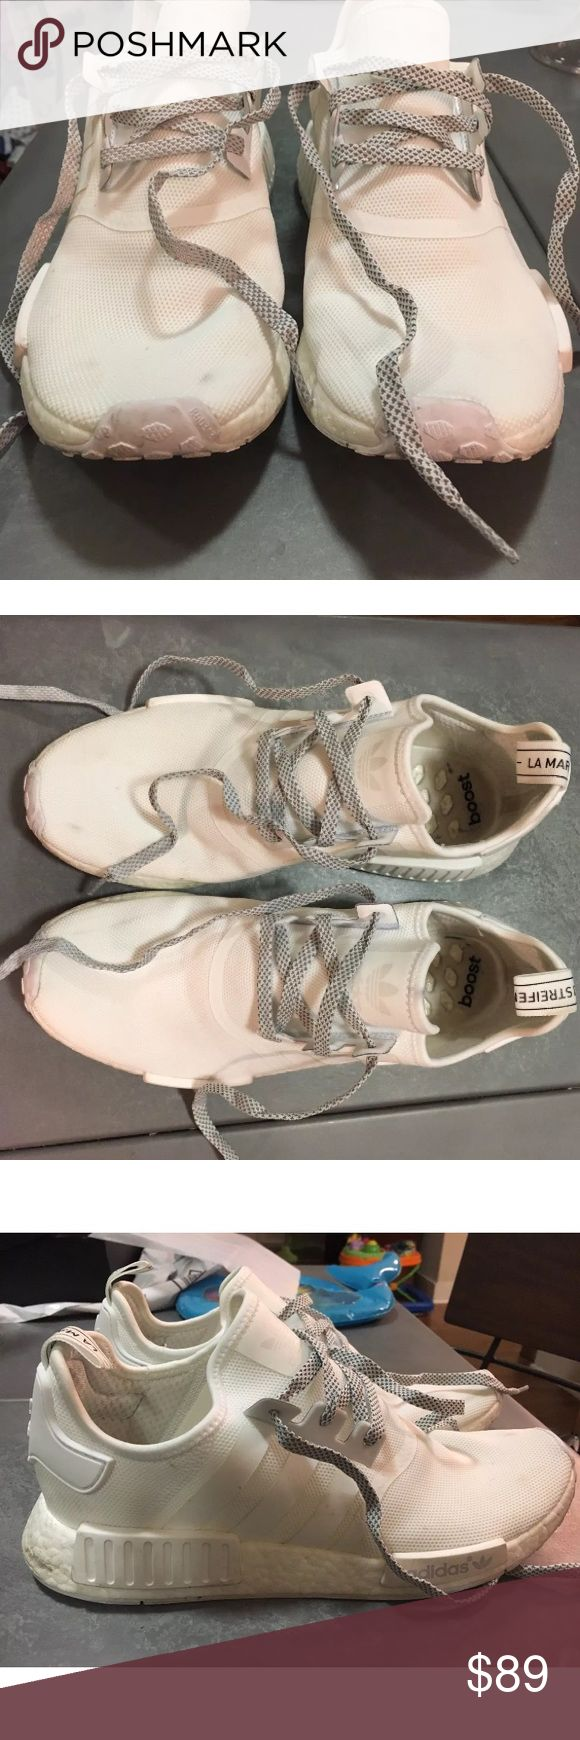 5cb799fdf3ab3 2016Adidas NMD R1 Runner WOMENS Salmon S76006 review from